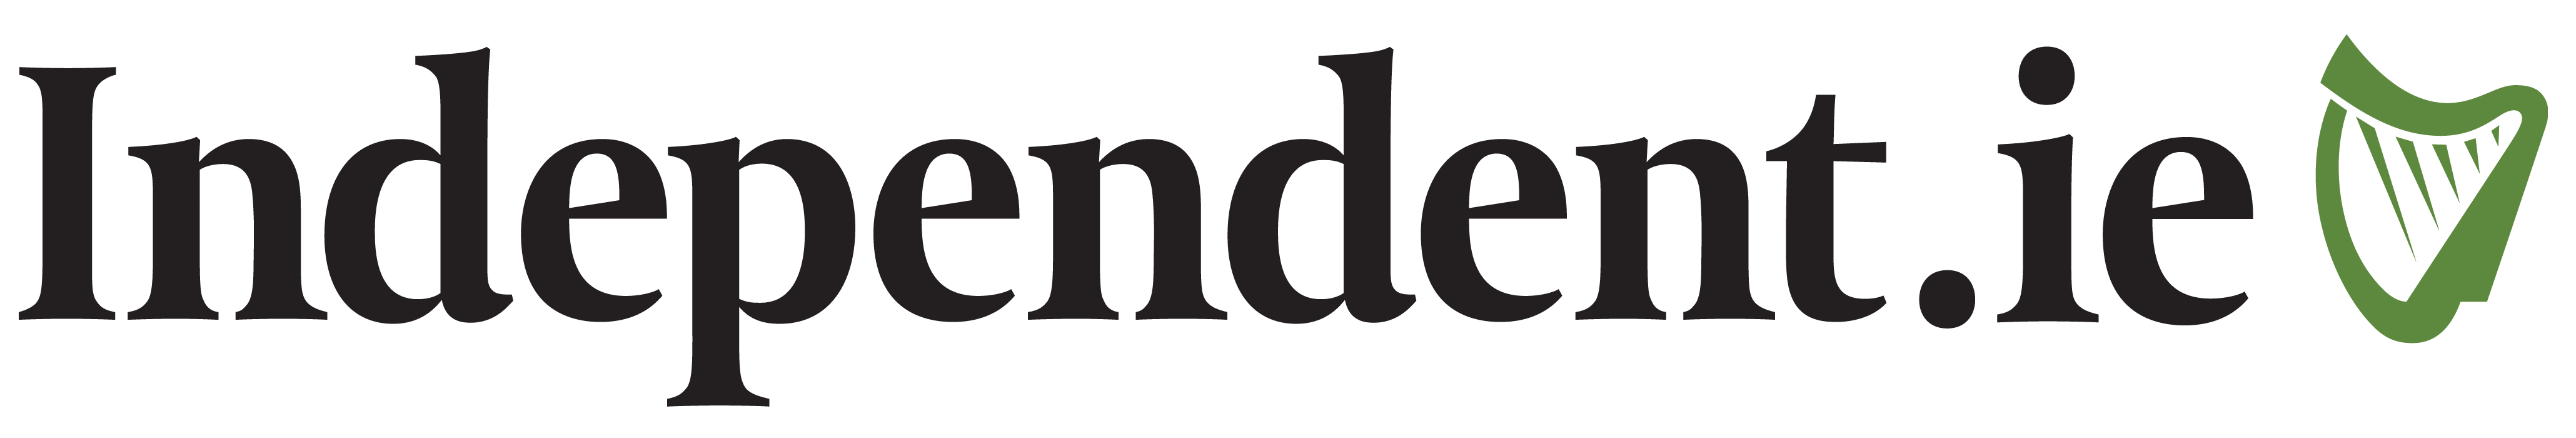 Irish_Independent_logo